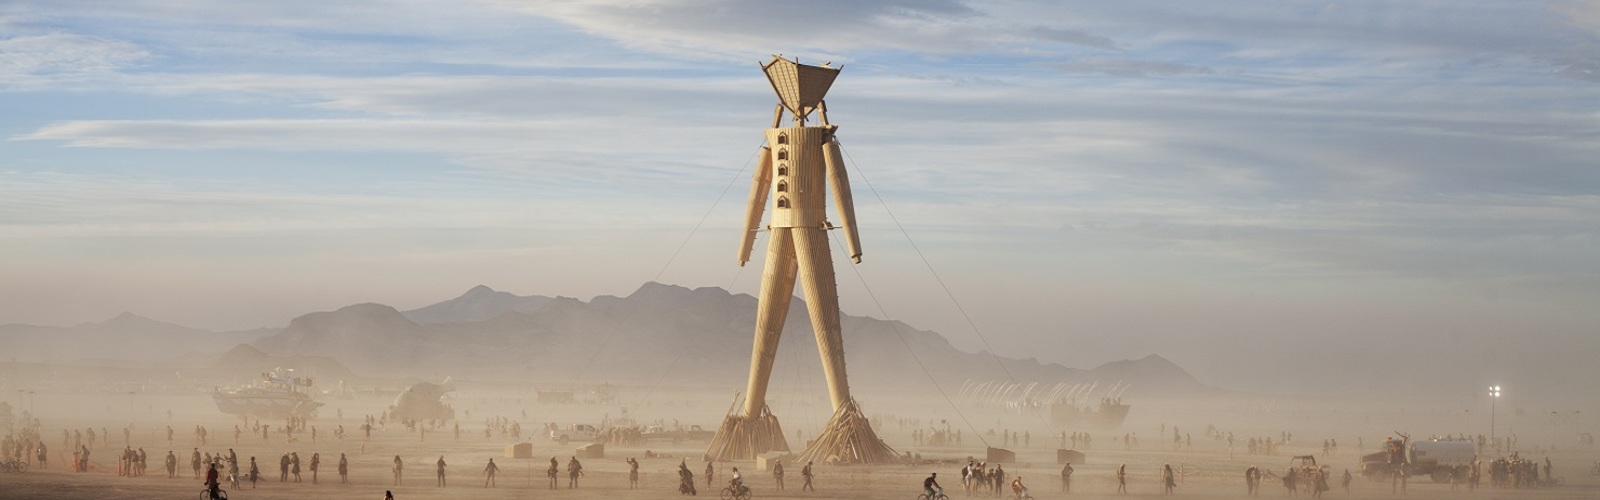 Burning Man starts today